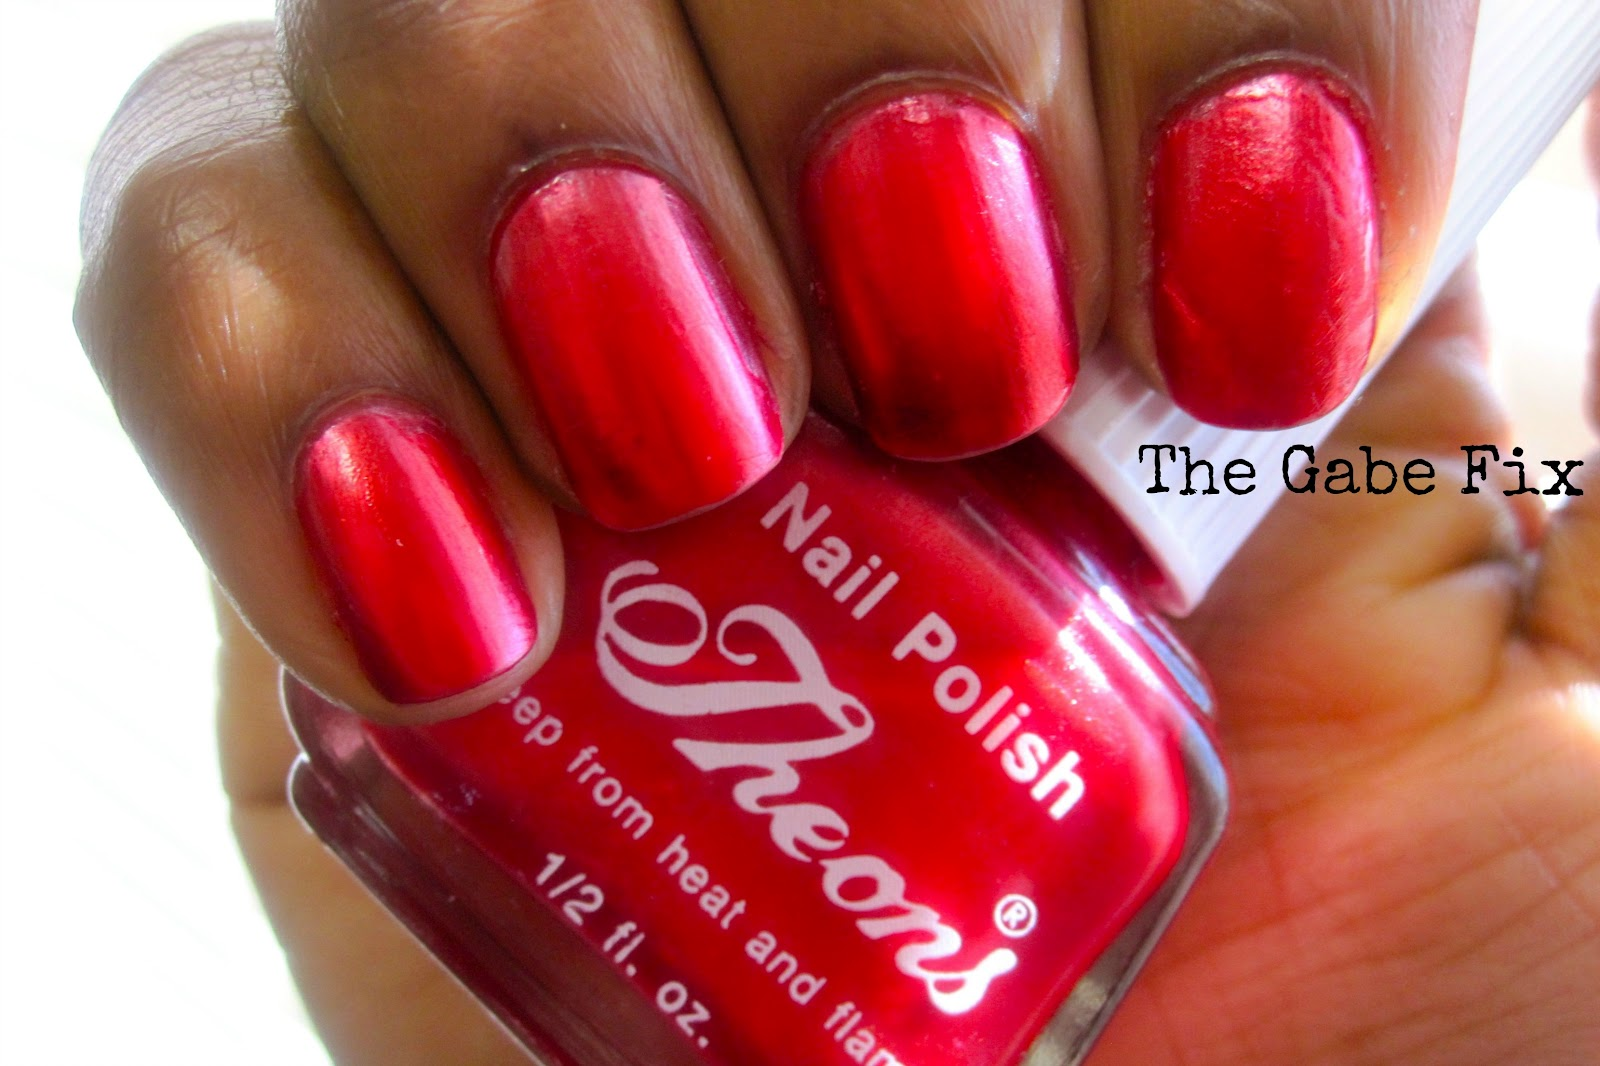 Manicure Monday - Theons #5 - The Gabe Fix by Gabrielle Flowers